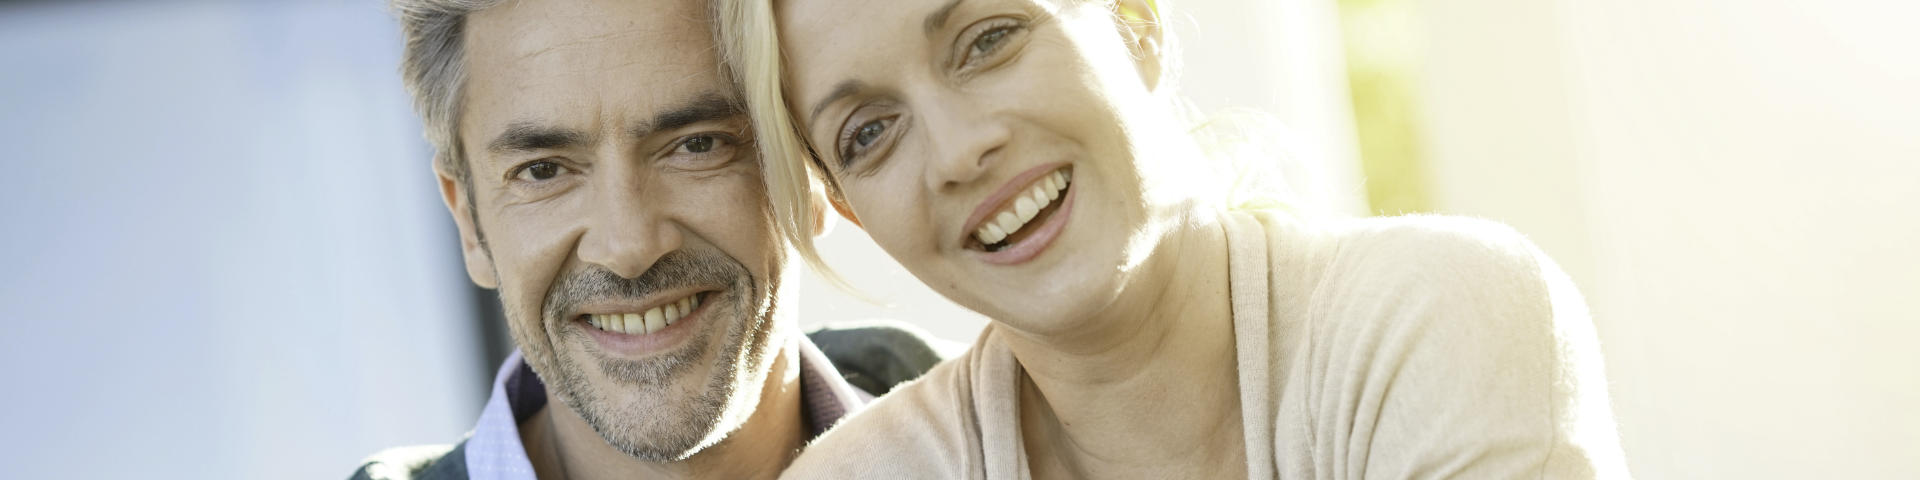 Happy middle-aged couple showing perfect teeth in their smiles.